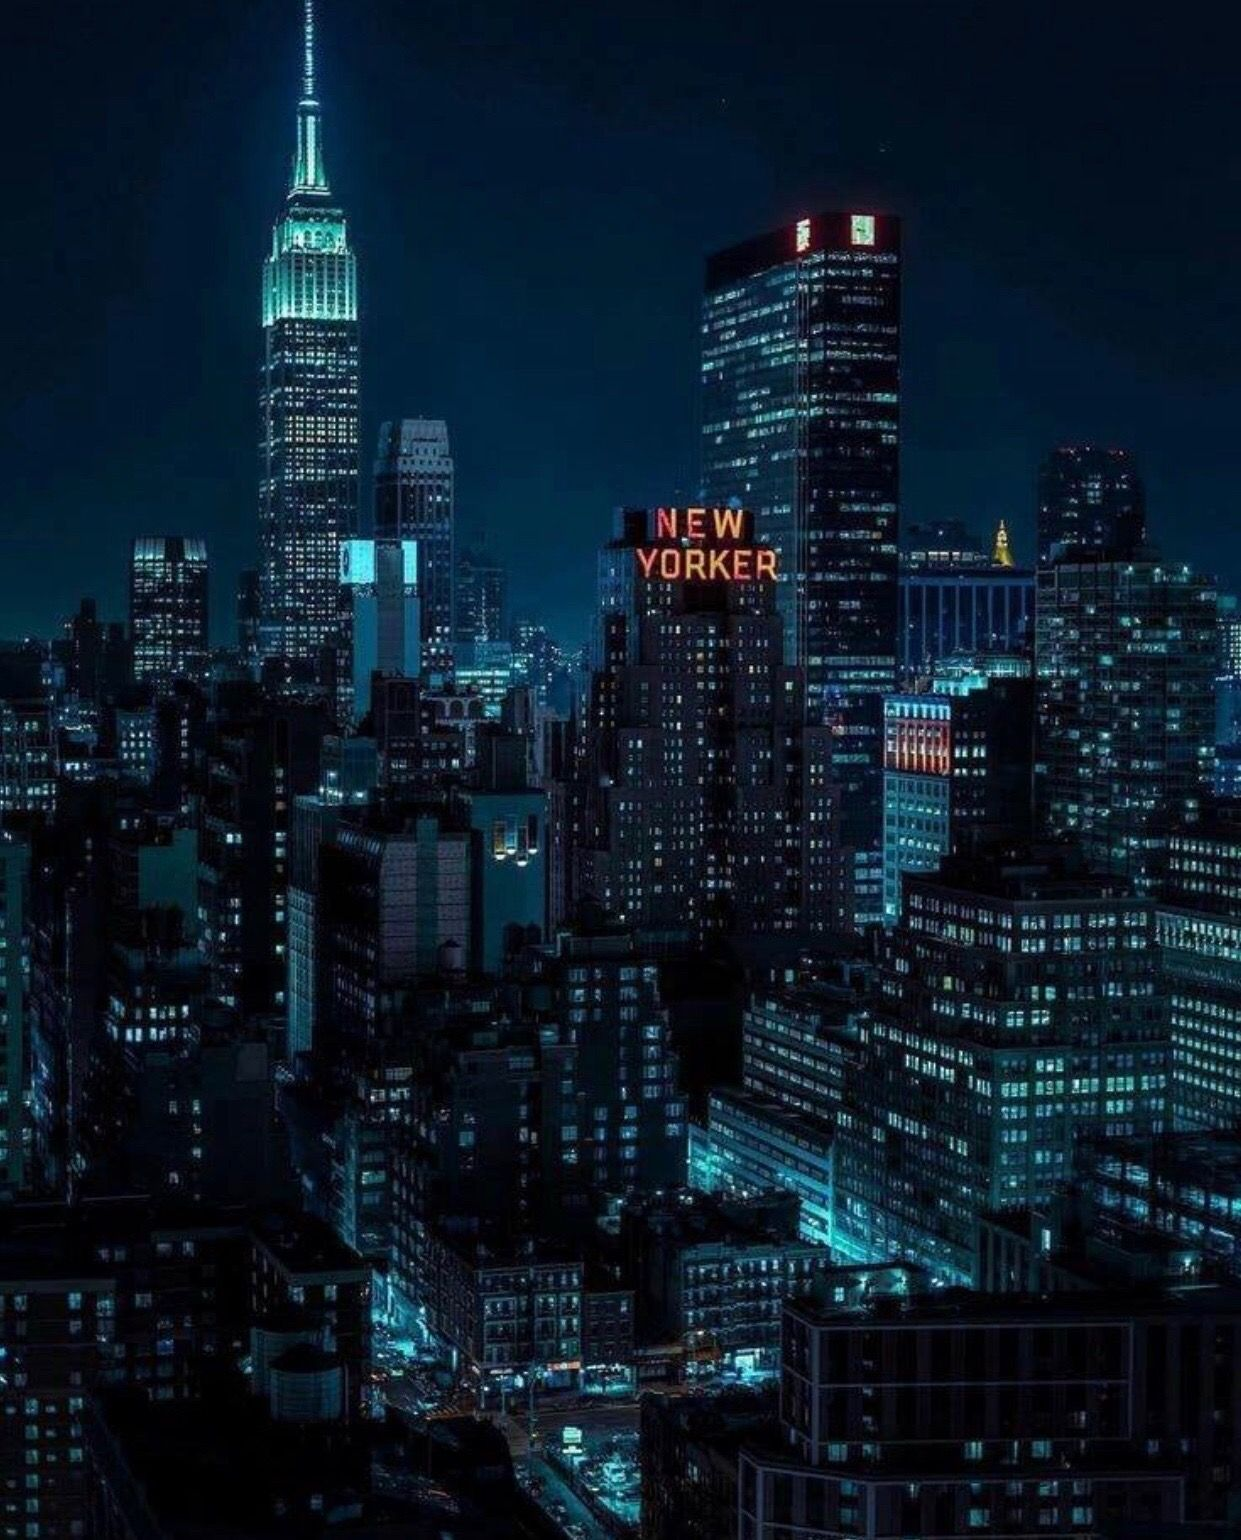 New York Aesthetic Wallpaper Night